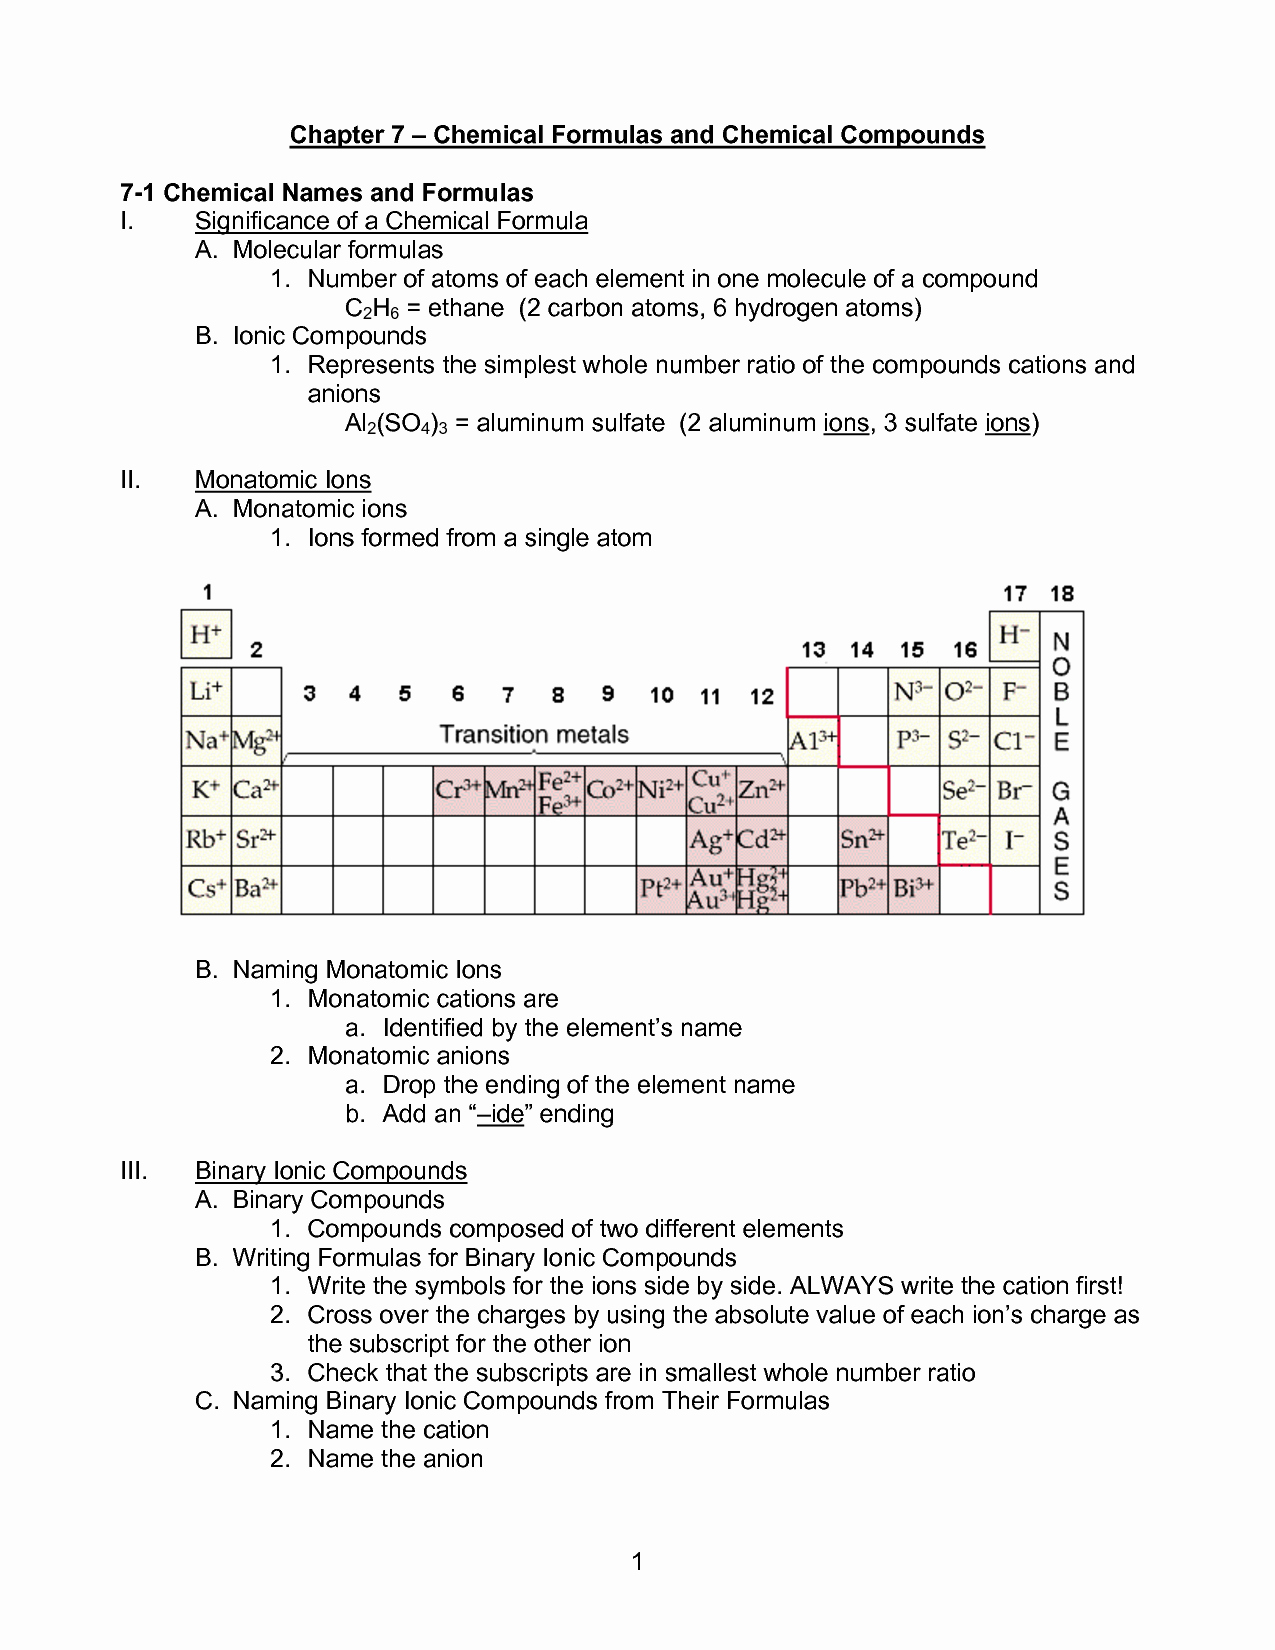 Simple Binary Ionic Compounds Worksheet Unique Number atoms In A formula Worksheet Answers